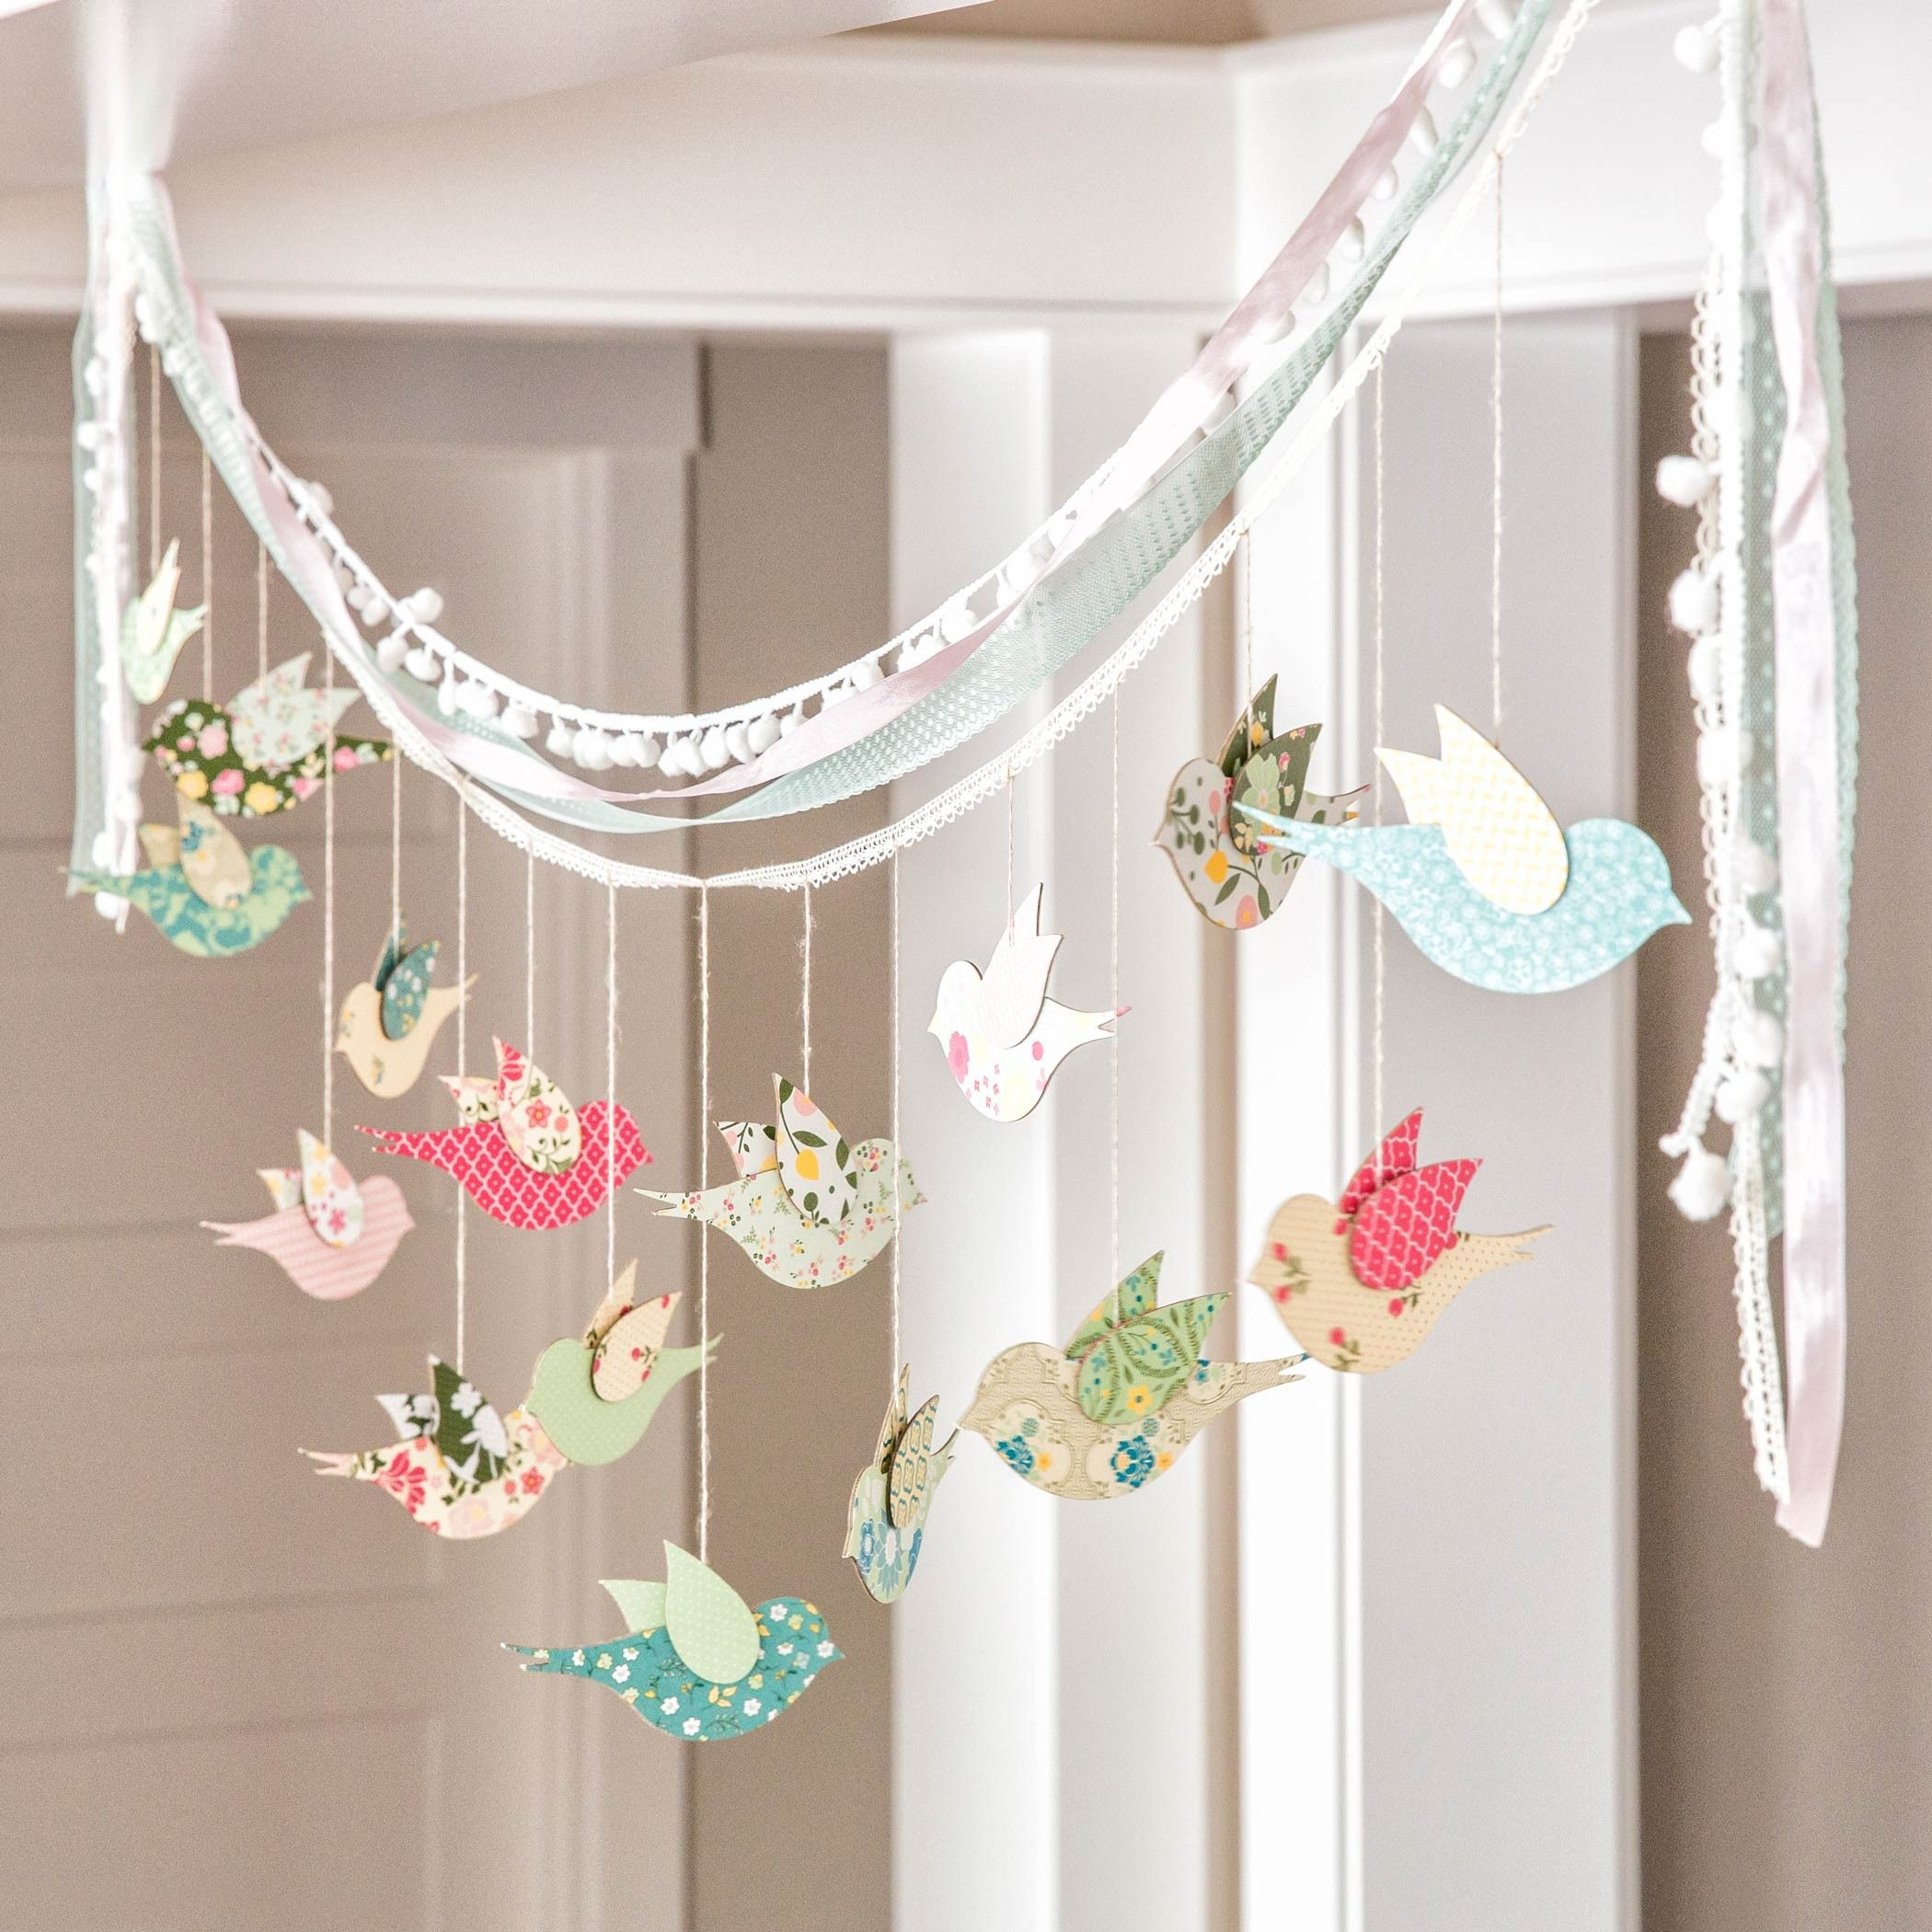 beautiful diy bird banner. home decor or party decor perfect for